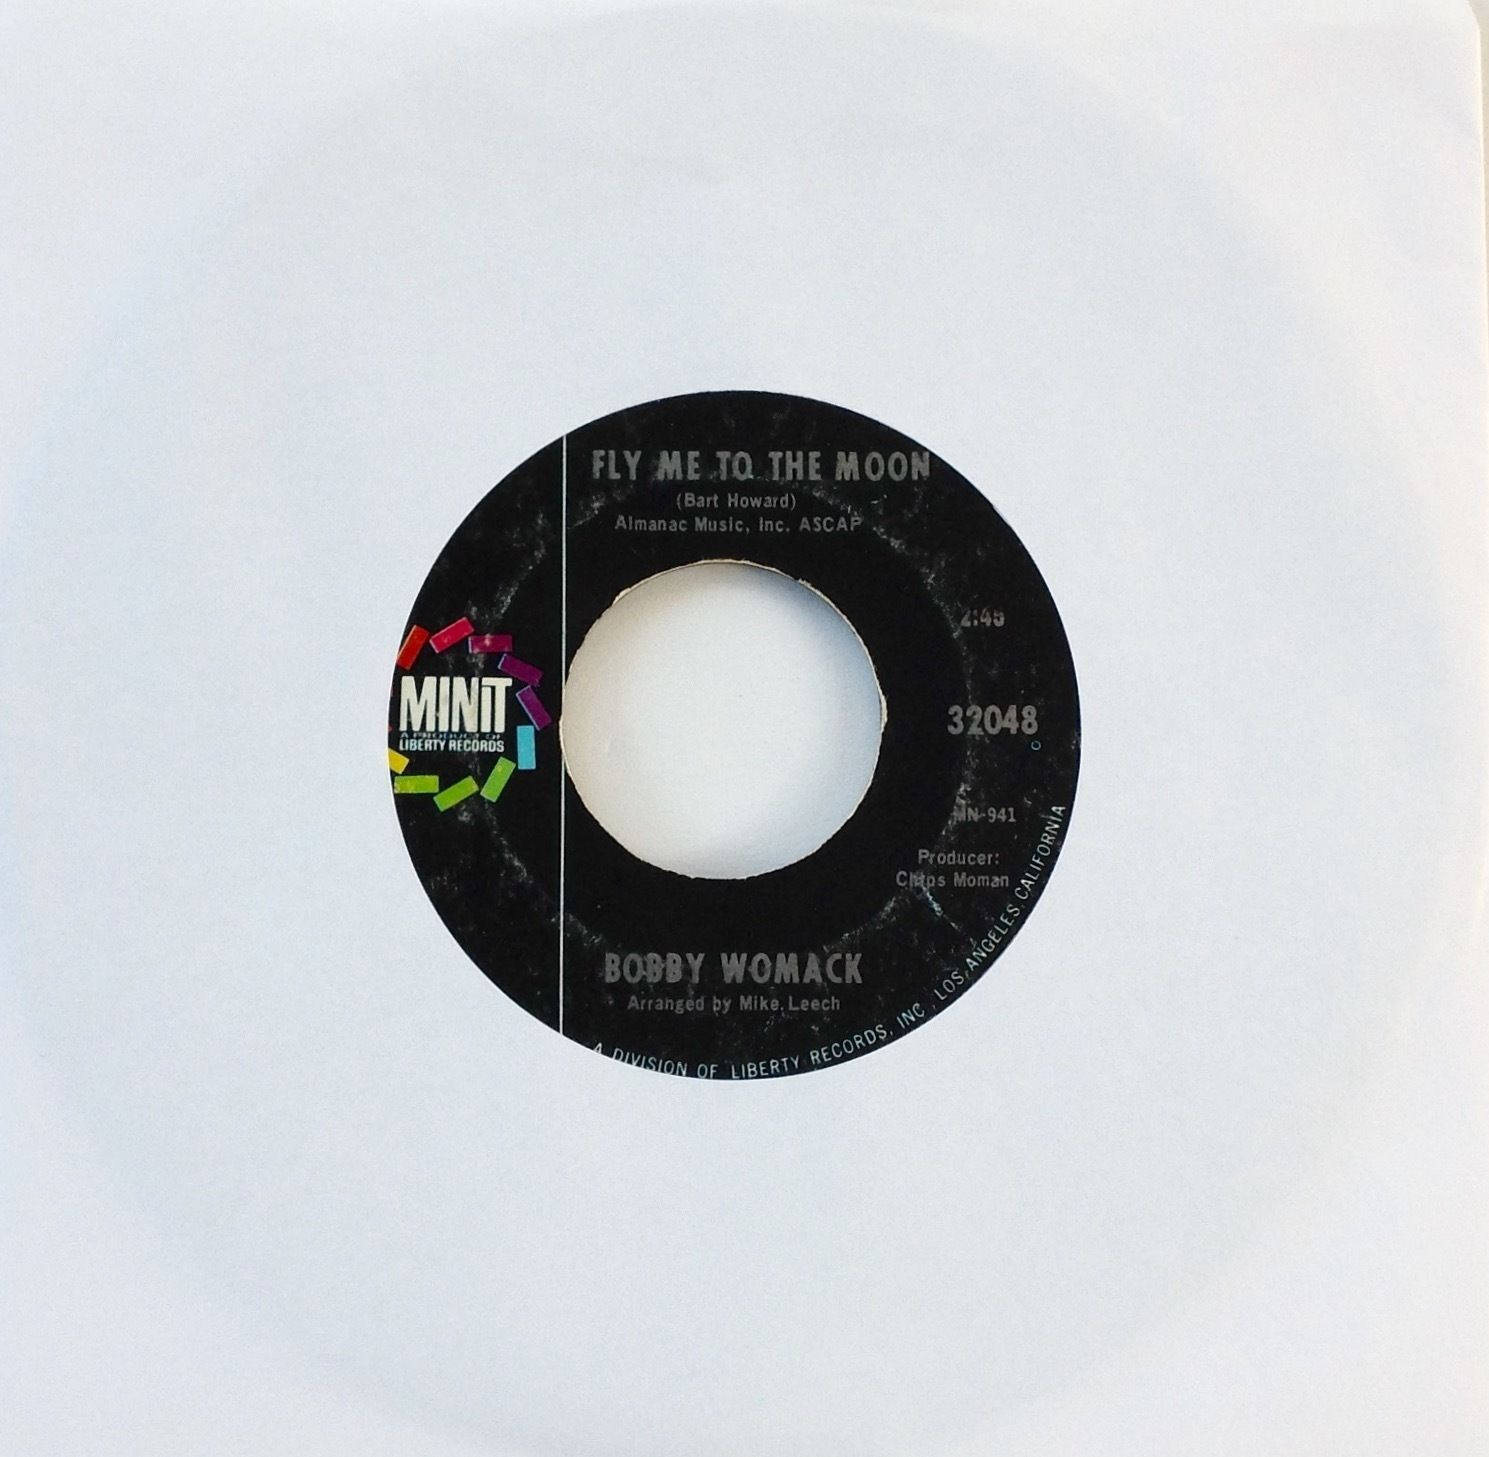 Bobby Womack Fly Me To The Moon, Take Me 1968 Minit 32048 '1A/1A'